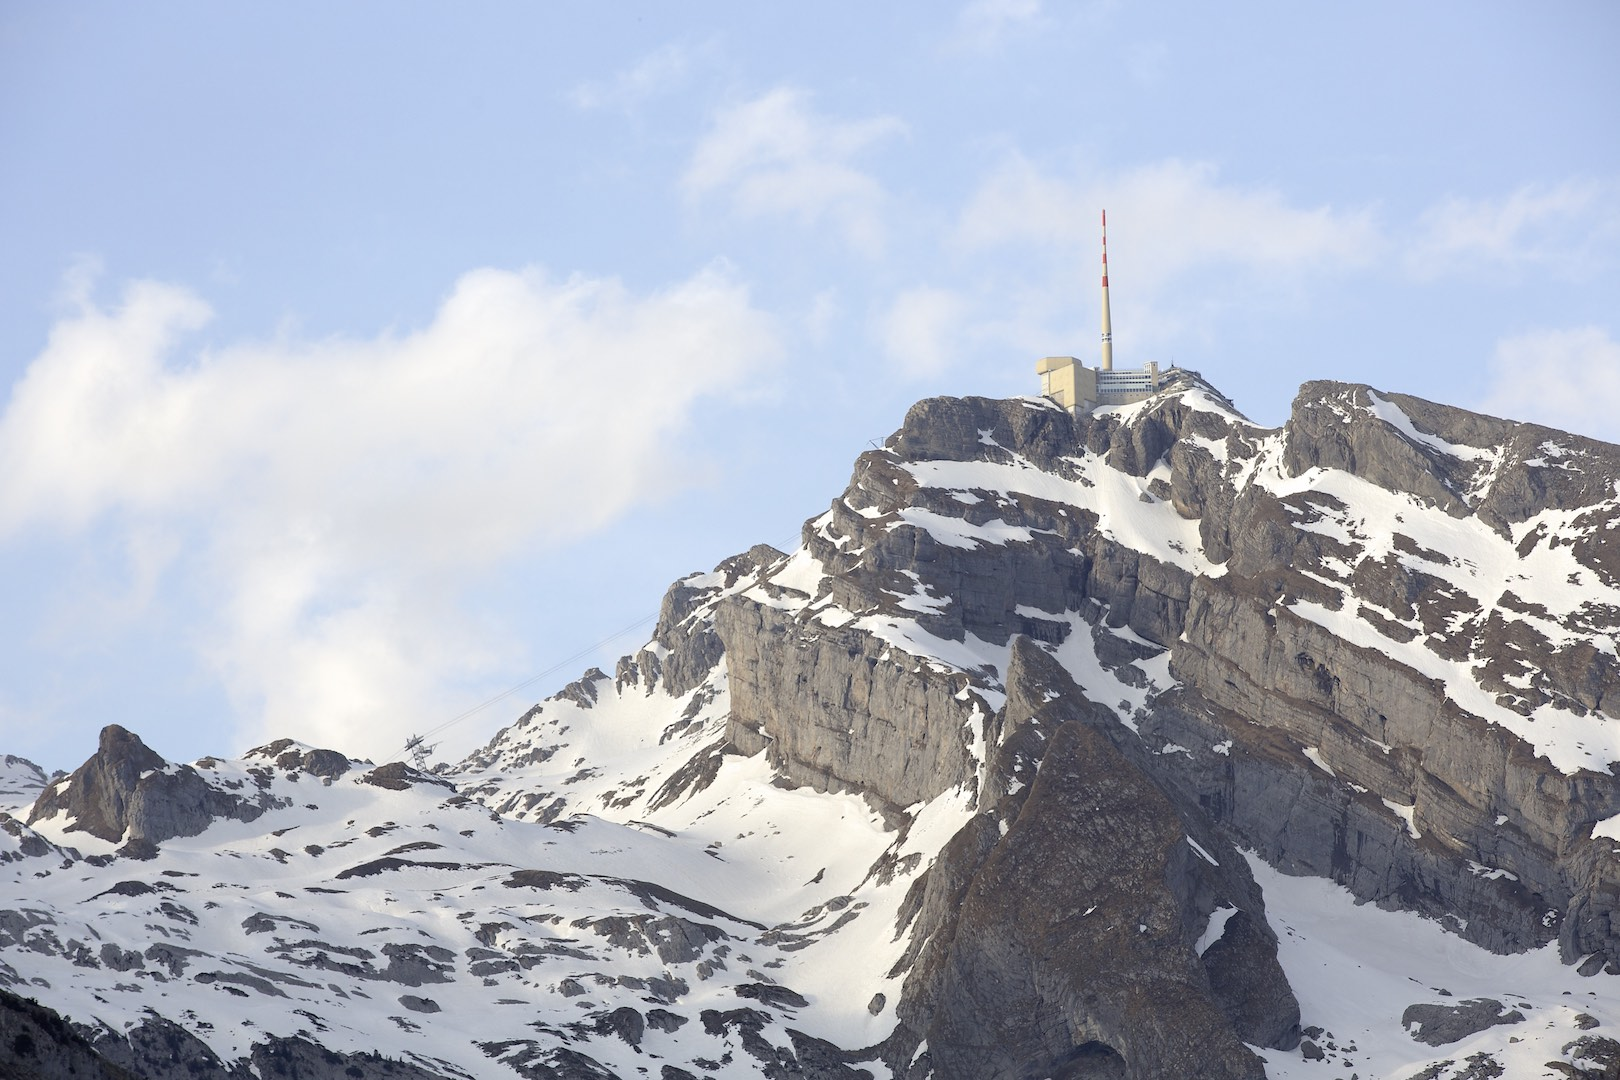 Säntis (2501m above sea level) with the Swisscom Broadcast tower (123m)